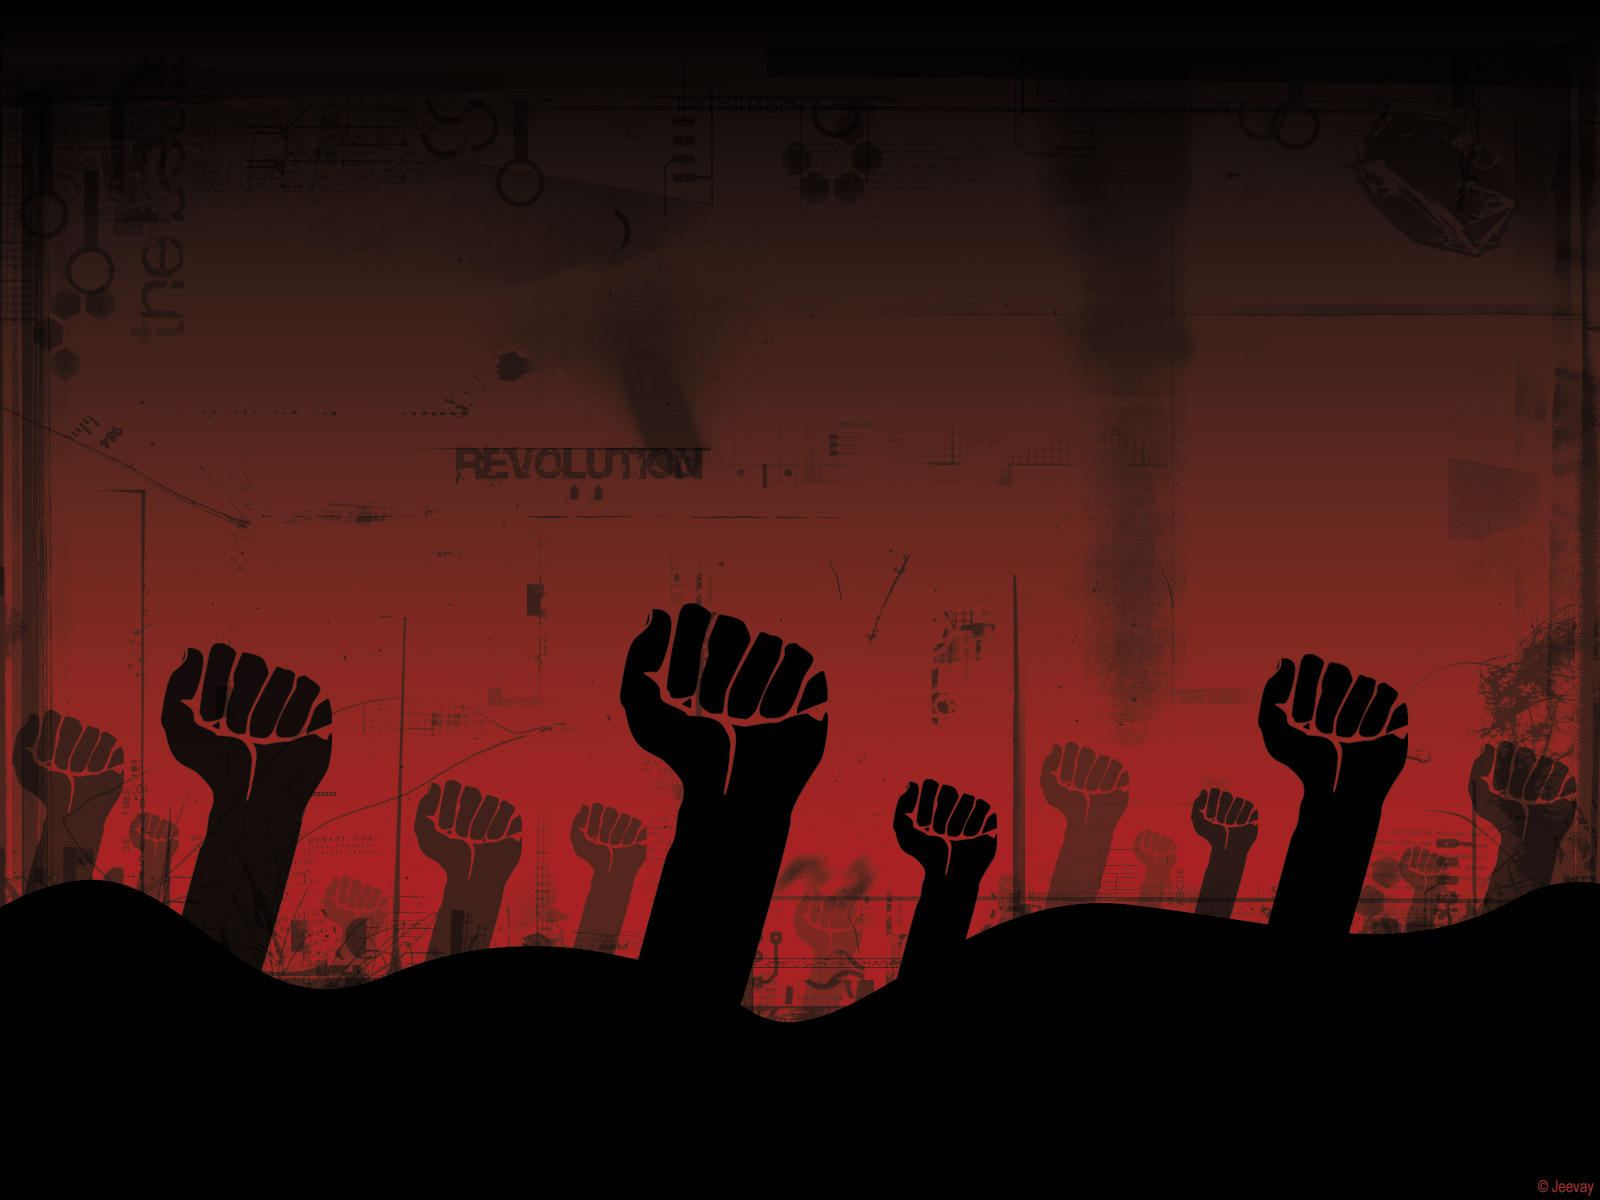 Revolution Wallpaper by Jeevay on Deviantart